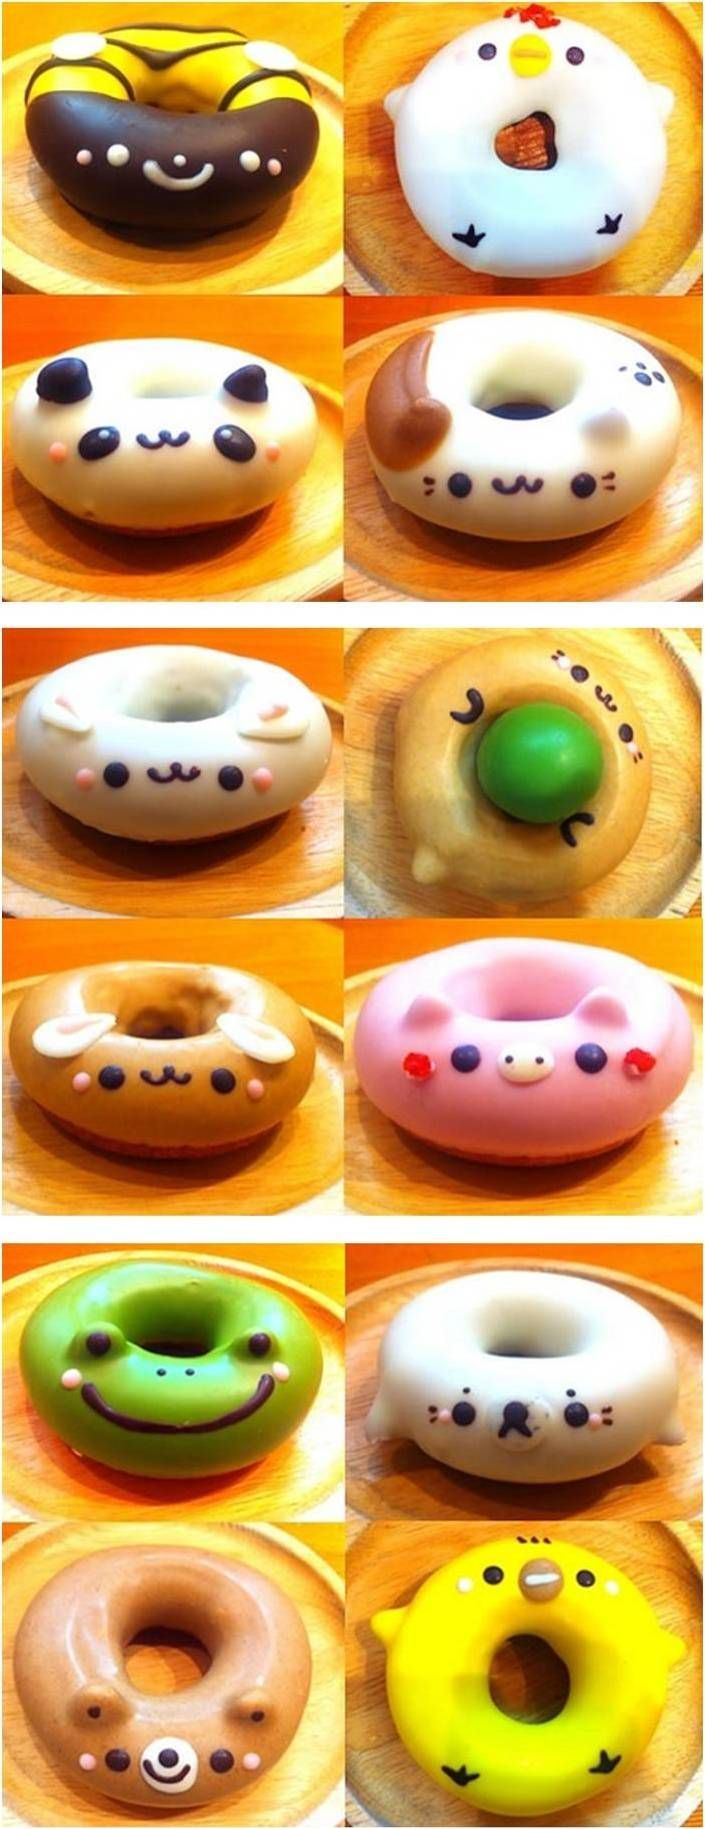 Japanese doughnuts... SO CUTE!!! I love the pig the chicken and the dog one!!!!! - http://teacakecafe.net/